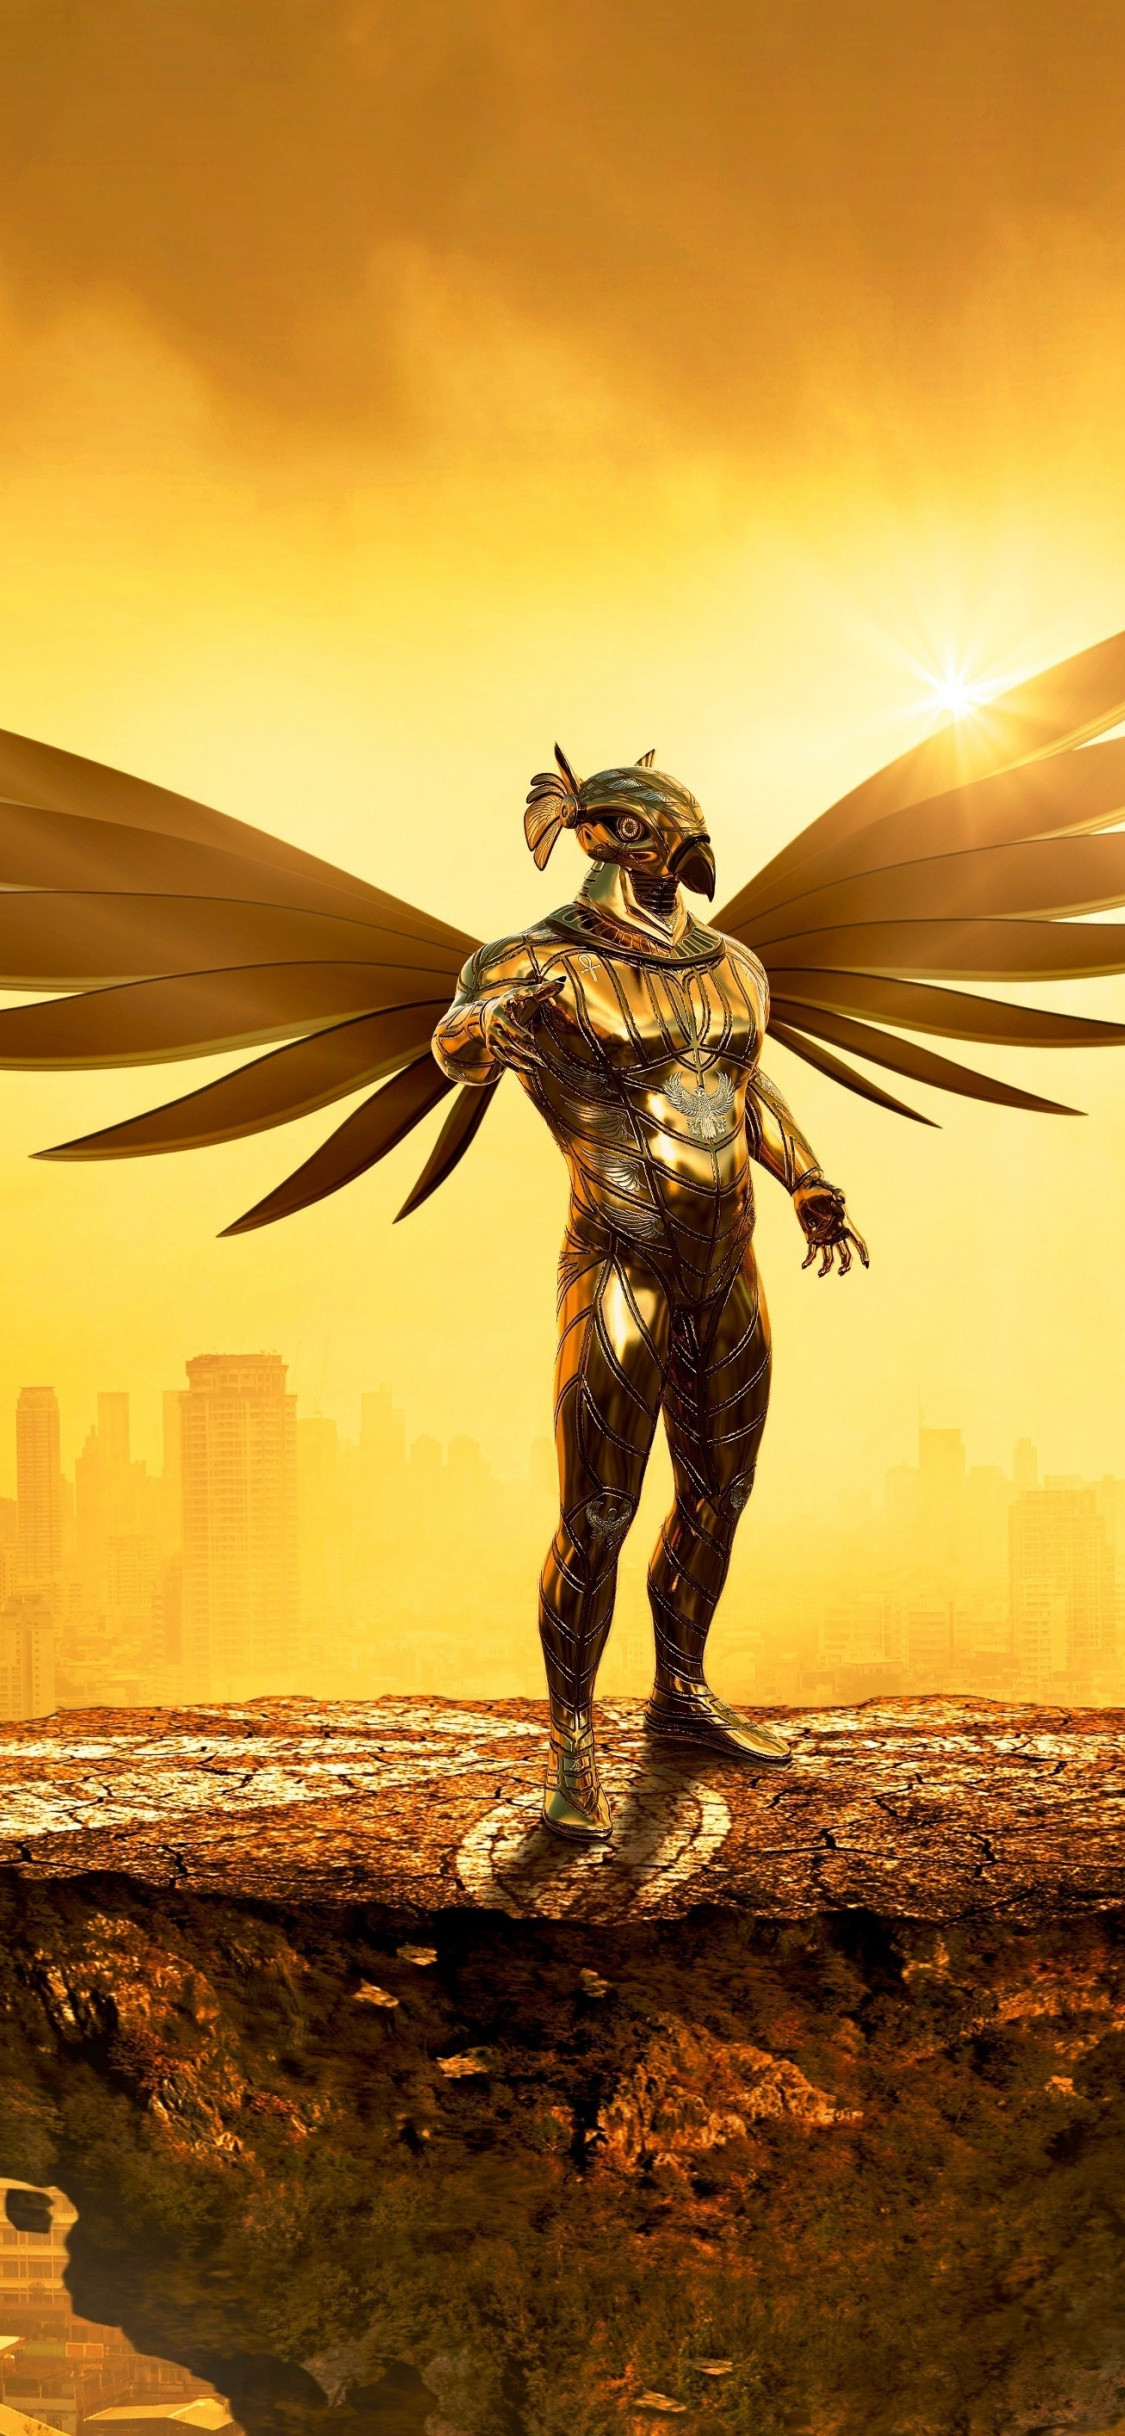 1125x2436 Fantasy, angel, golden, cityscape, digital art,  wallpaper